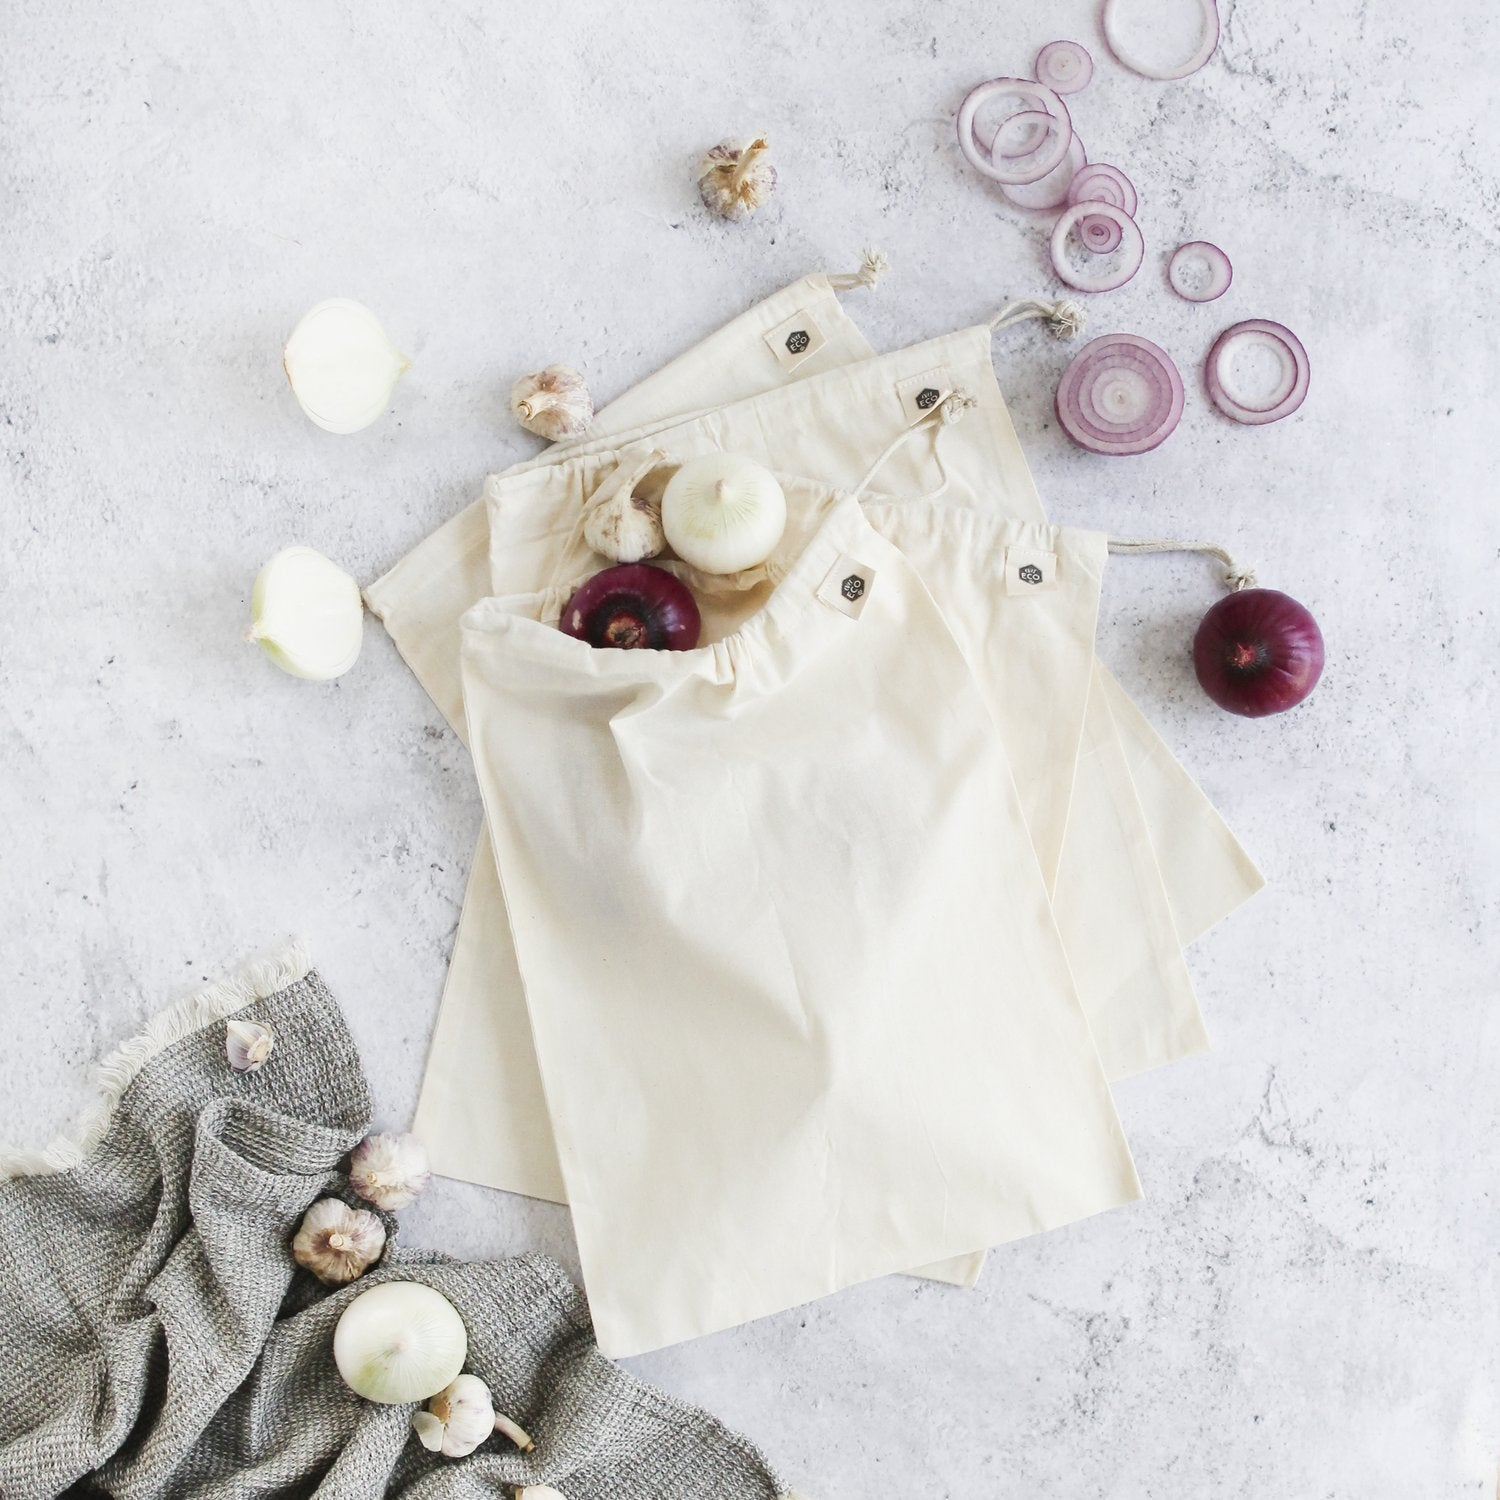 Ever Eco | Organic cotton muslin produce bags 4 pack | Plastic Free Living | Environmentally Friendly Homewares